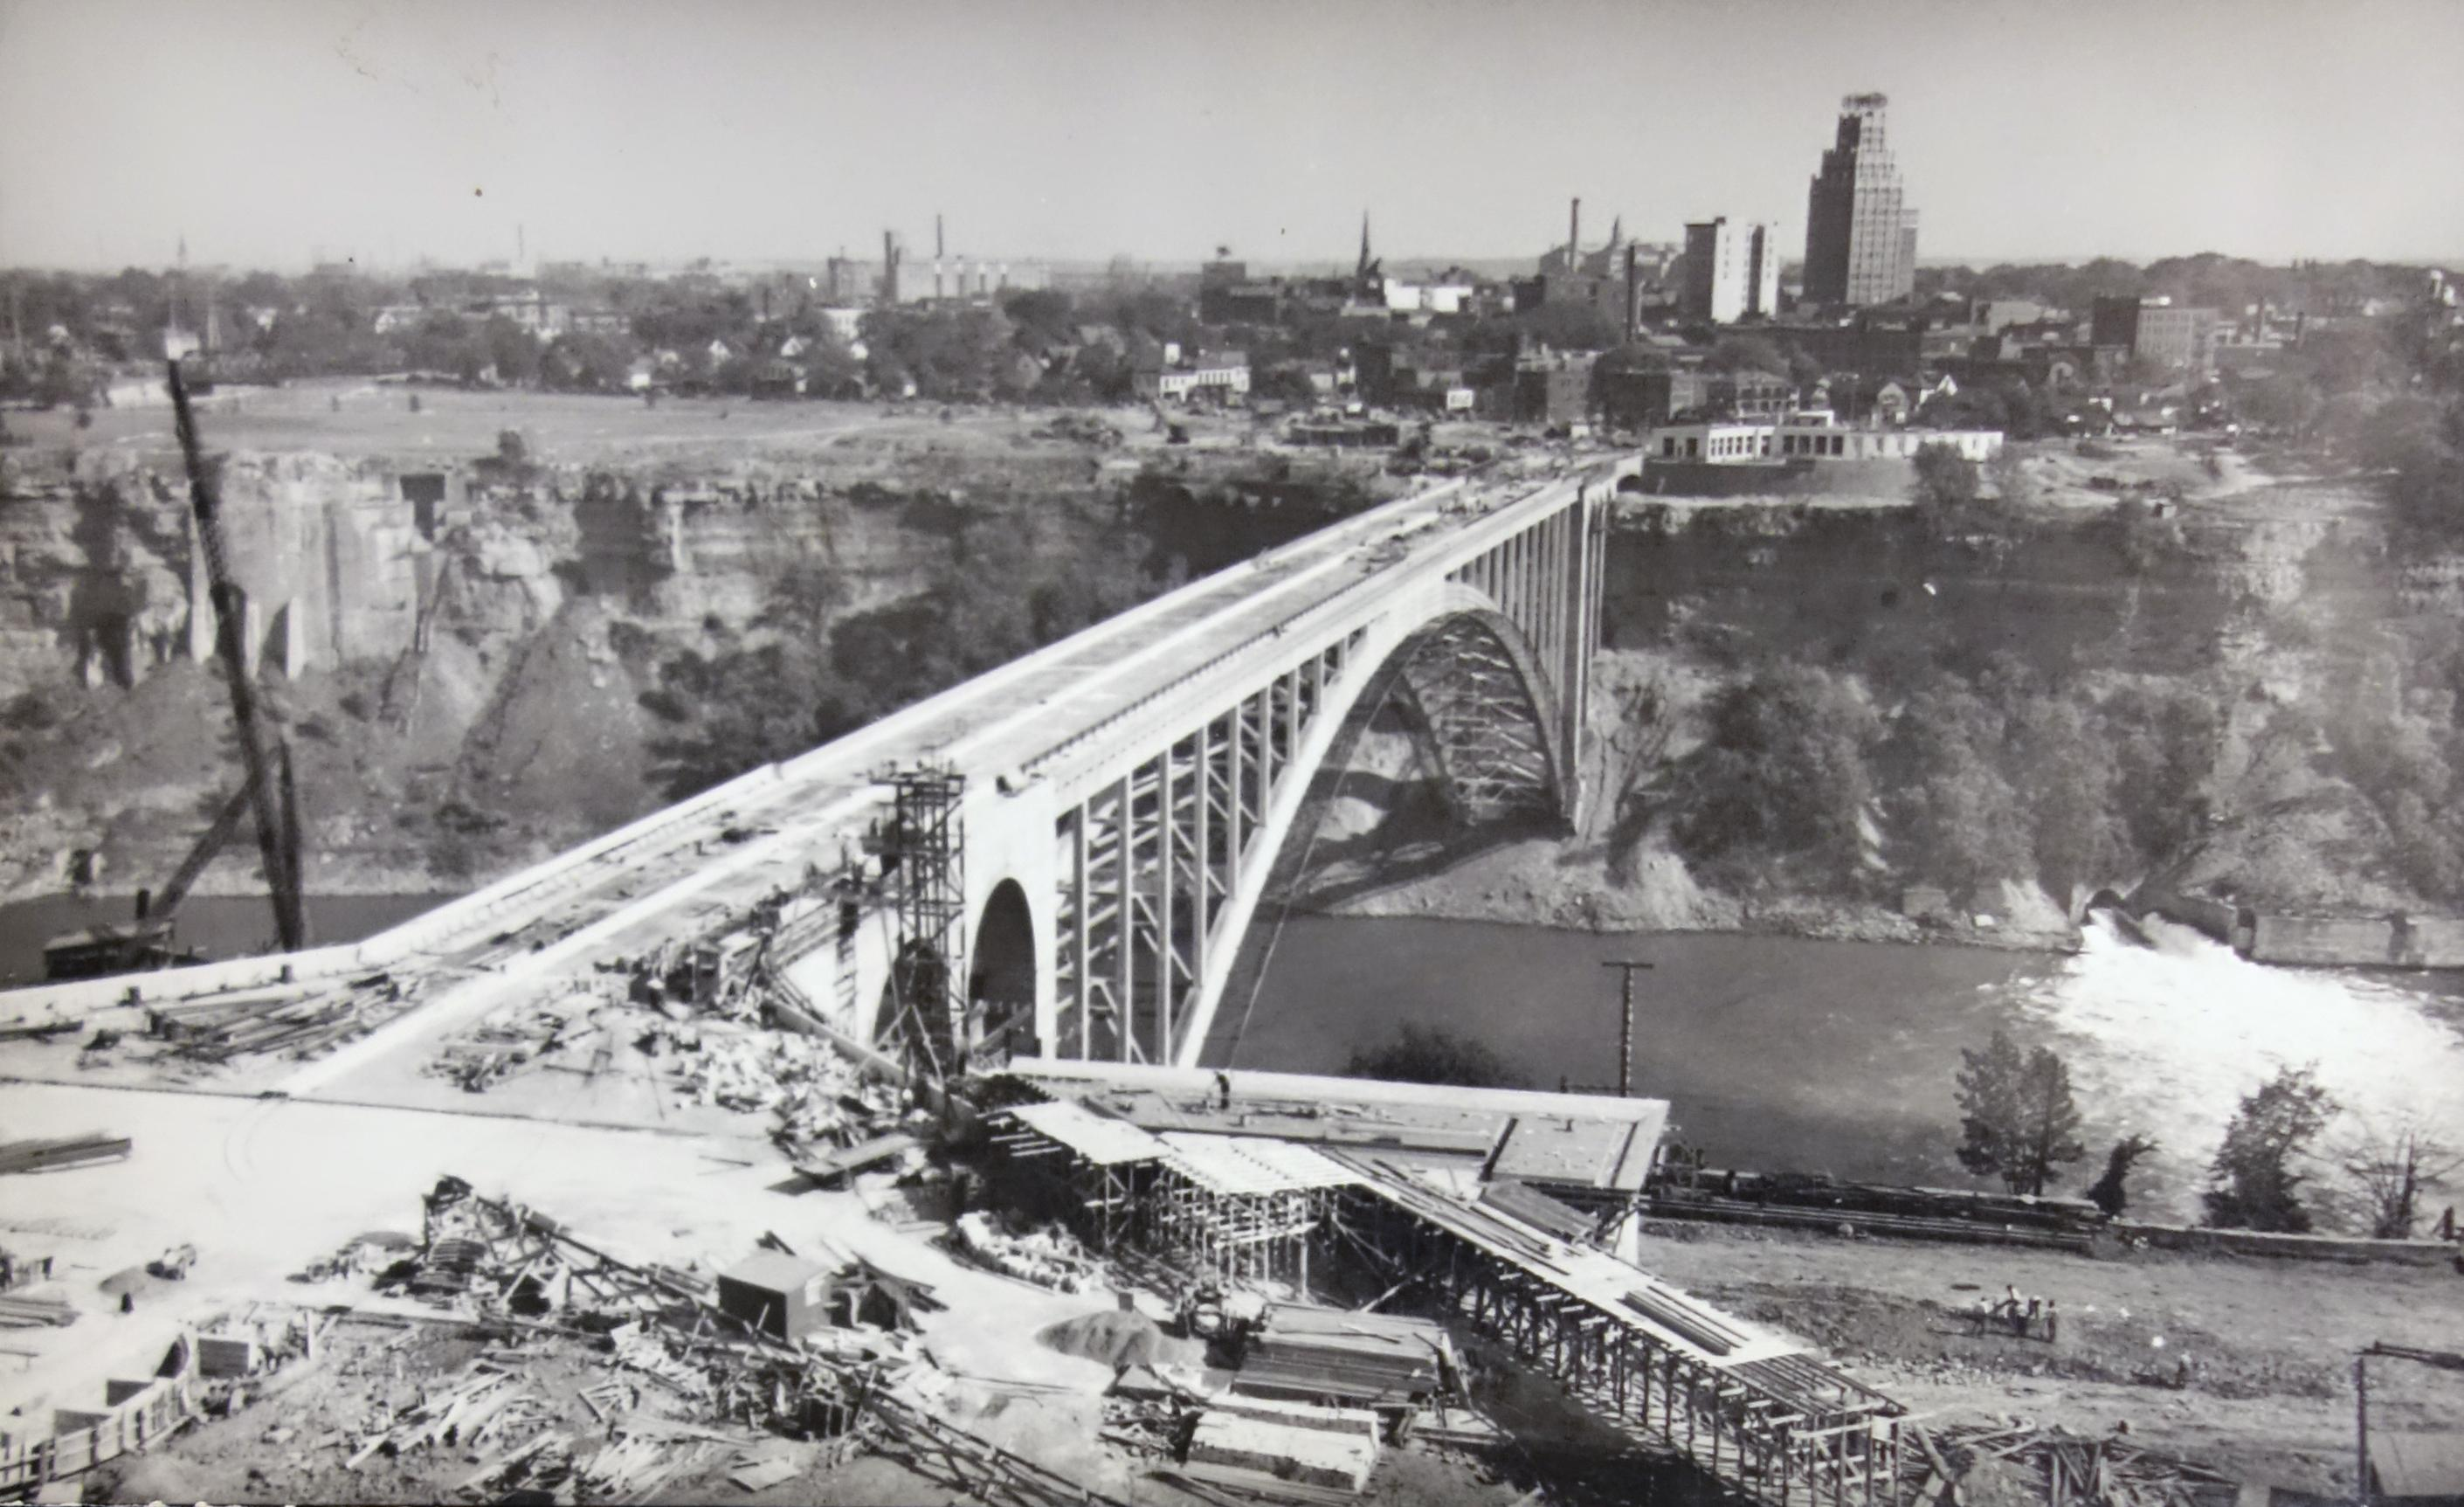 Construction of the Rainbow Bridge. Photograph taken from the Canadian side looking toward the American side, the Niagara United Office Building is on the opposite shore. The former footings of the Honeymoon Bridge is at the right; the footings of the Rainbow Bridge are twice as far from the water line as the previous bridge's. The concrete portions of this bridge are the top and the arches prior to the steel riveted main arch, which forms the majority of the bridge. Several trees dot the sides of the gorge on both sides. There are no workers in this image.